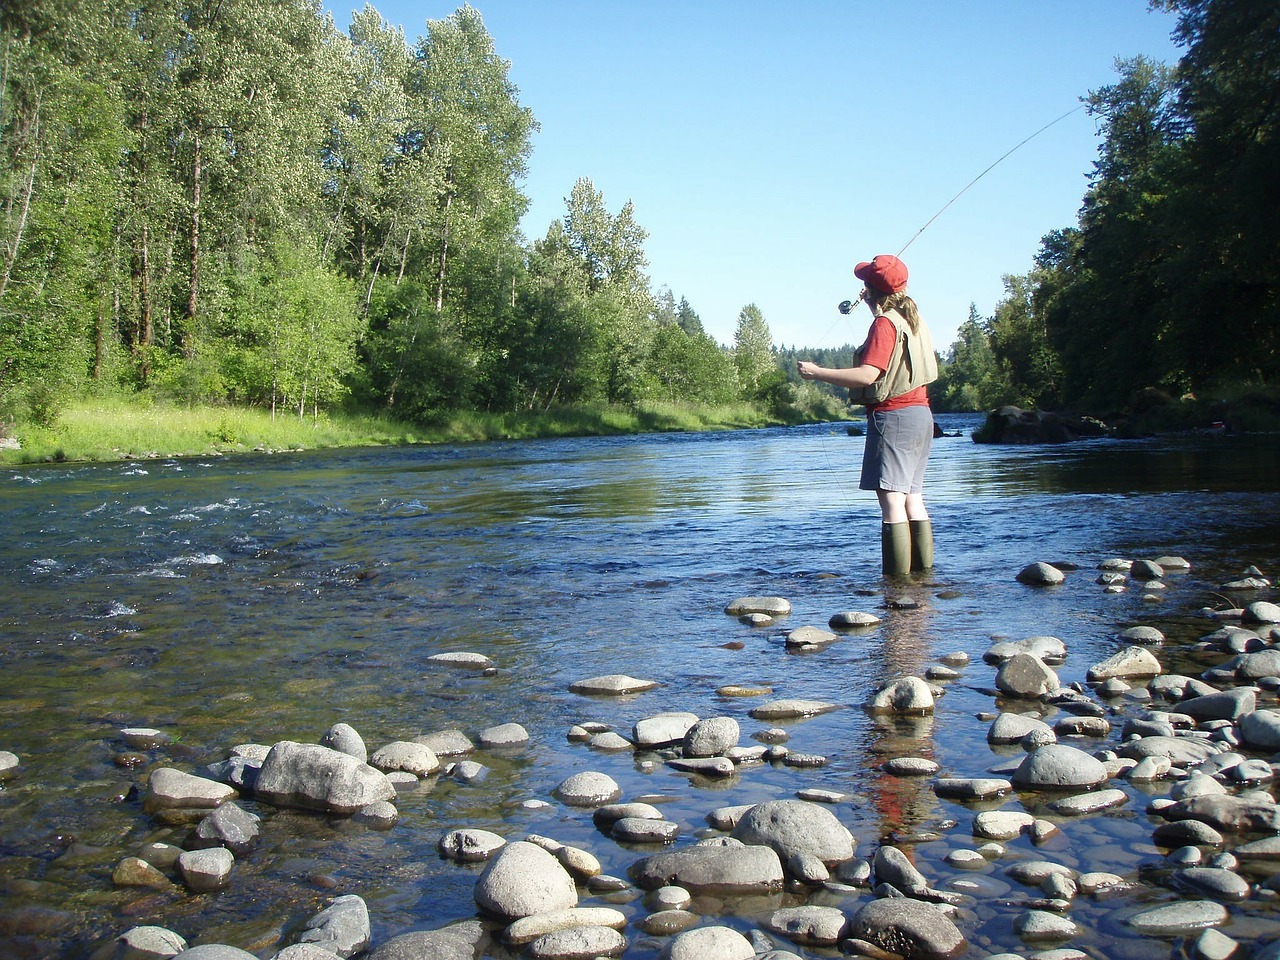 fly fishing tips, fall vacation ideas for 2020